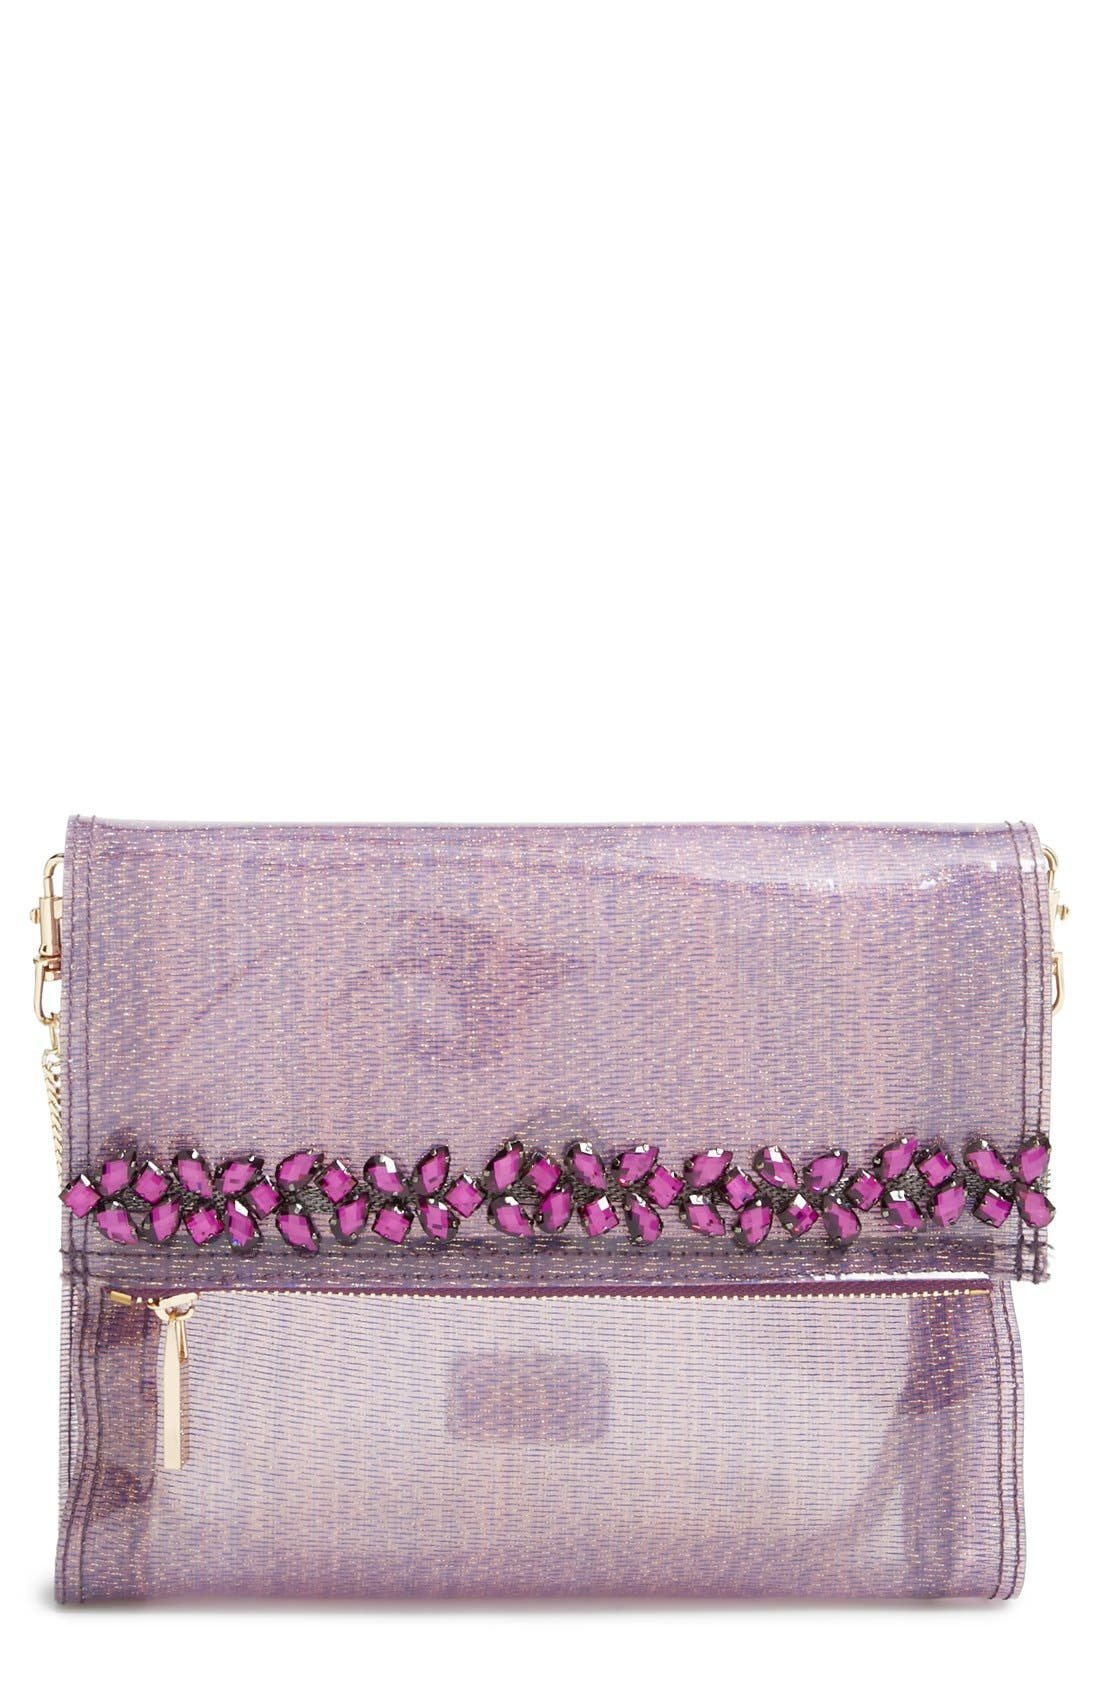 Main Image - Deux Lux 'Pasha' Crystal Embellished Convertible Foldover Clutch